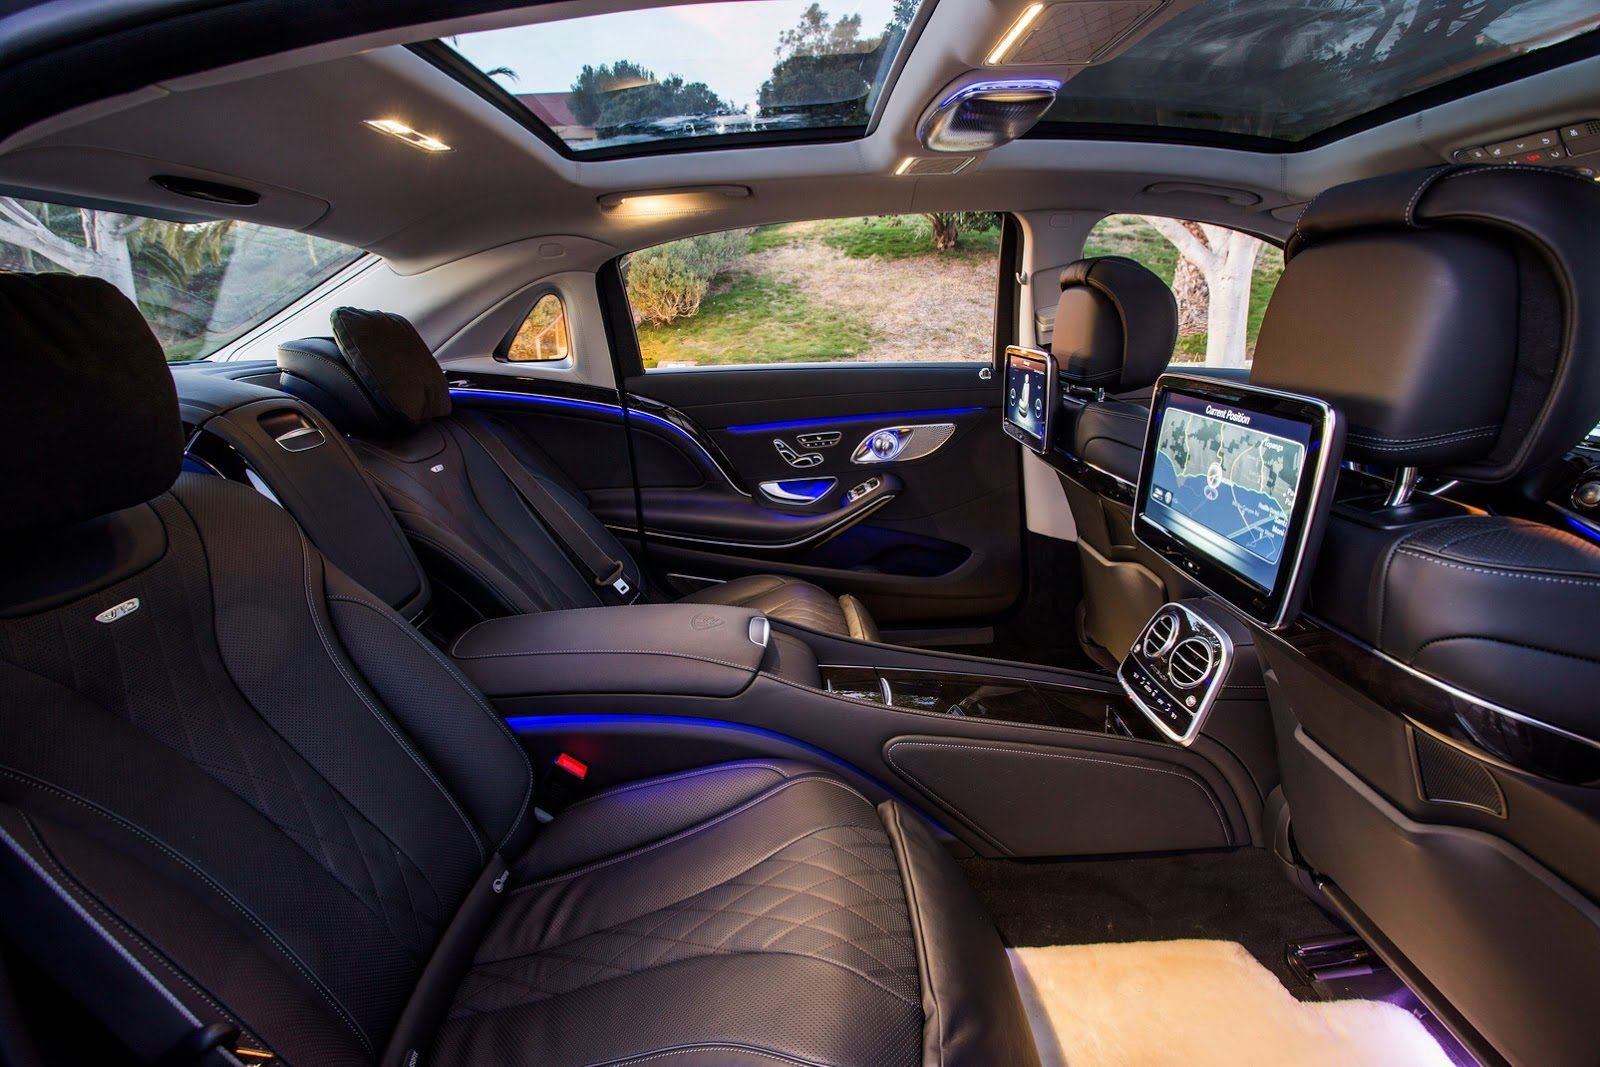 Master odor removal 39 s core business is providing a odor - How to get mold out of car interior ...